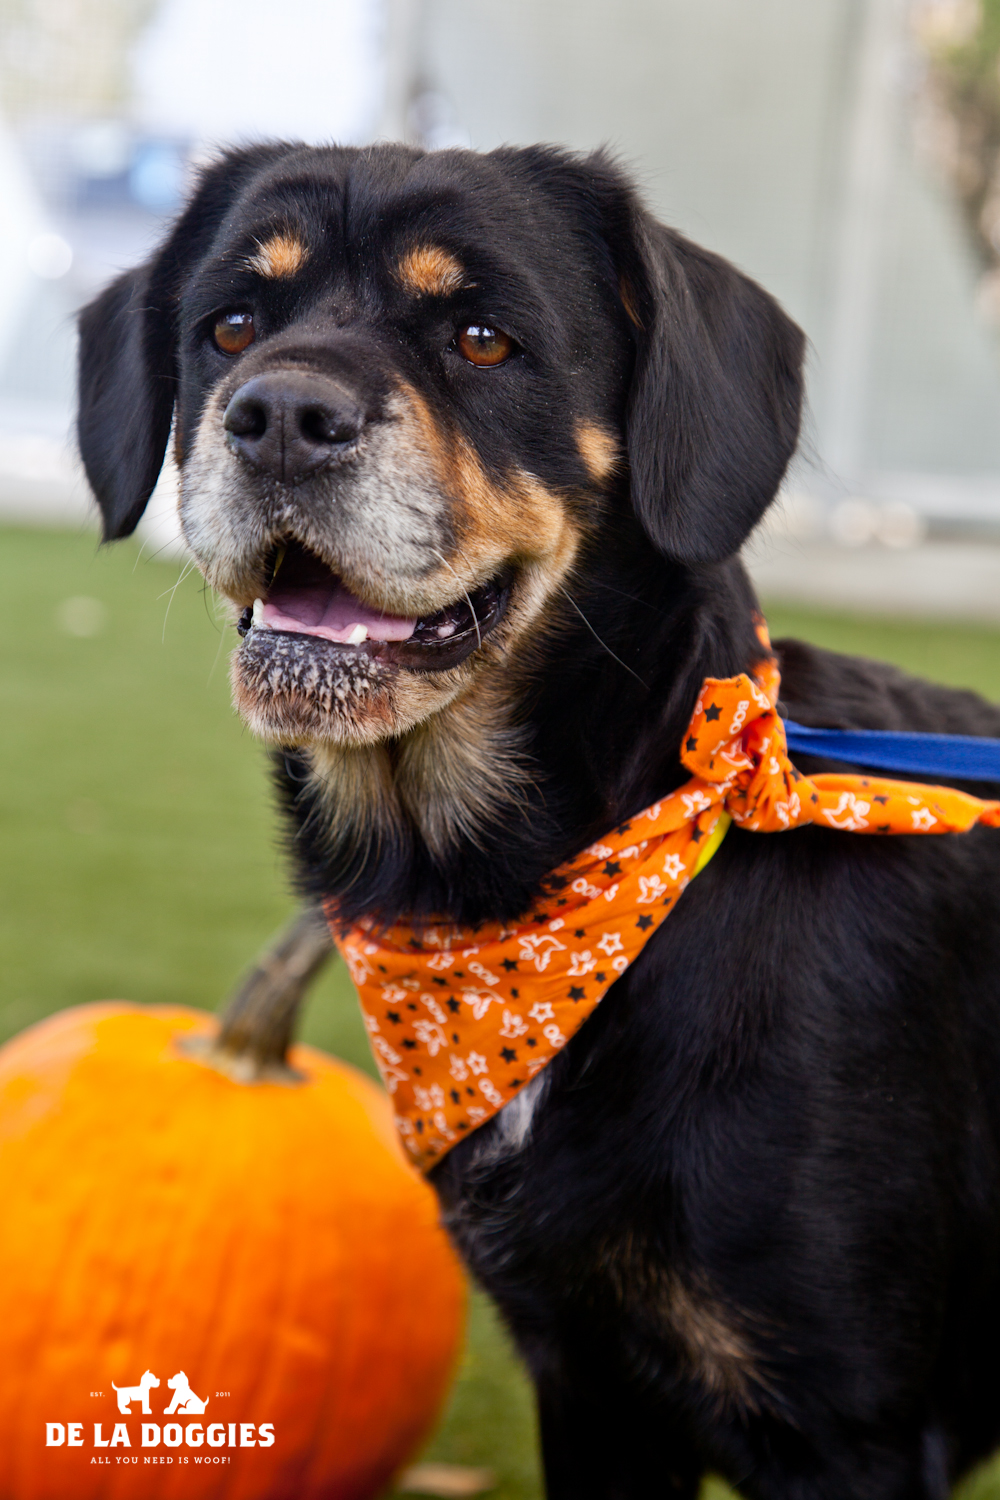 Hi my name is Baby. A1426471  I am a 4 year old, unaltered female, black and brown Cocker Spaniel and Beagle mix. I am SUPER calm and mellow, very patient and i know some commands. I am one special girl. I have been at the shelter since Se  p 23, 2013. Please come meet me!  1850 West 60th street  Los Angeles, CA 90047 L.A. 90018 (213) 485-0214 (213) 485-0227 (213) 485-0303